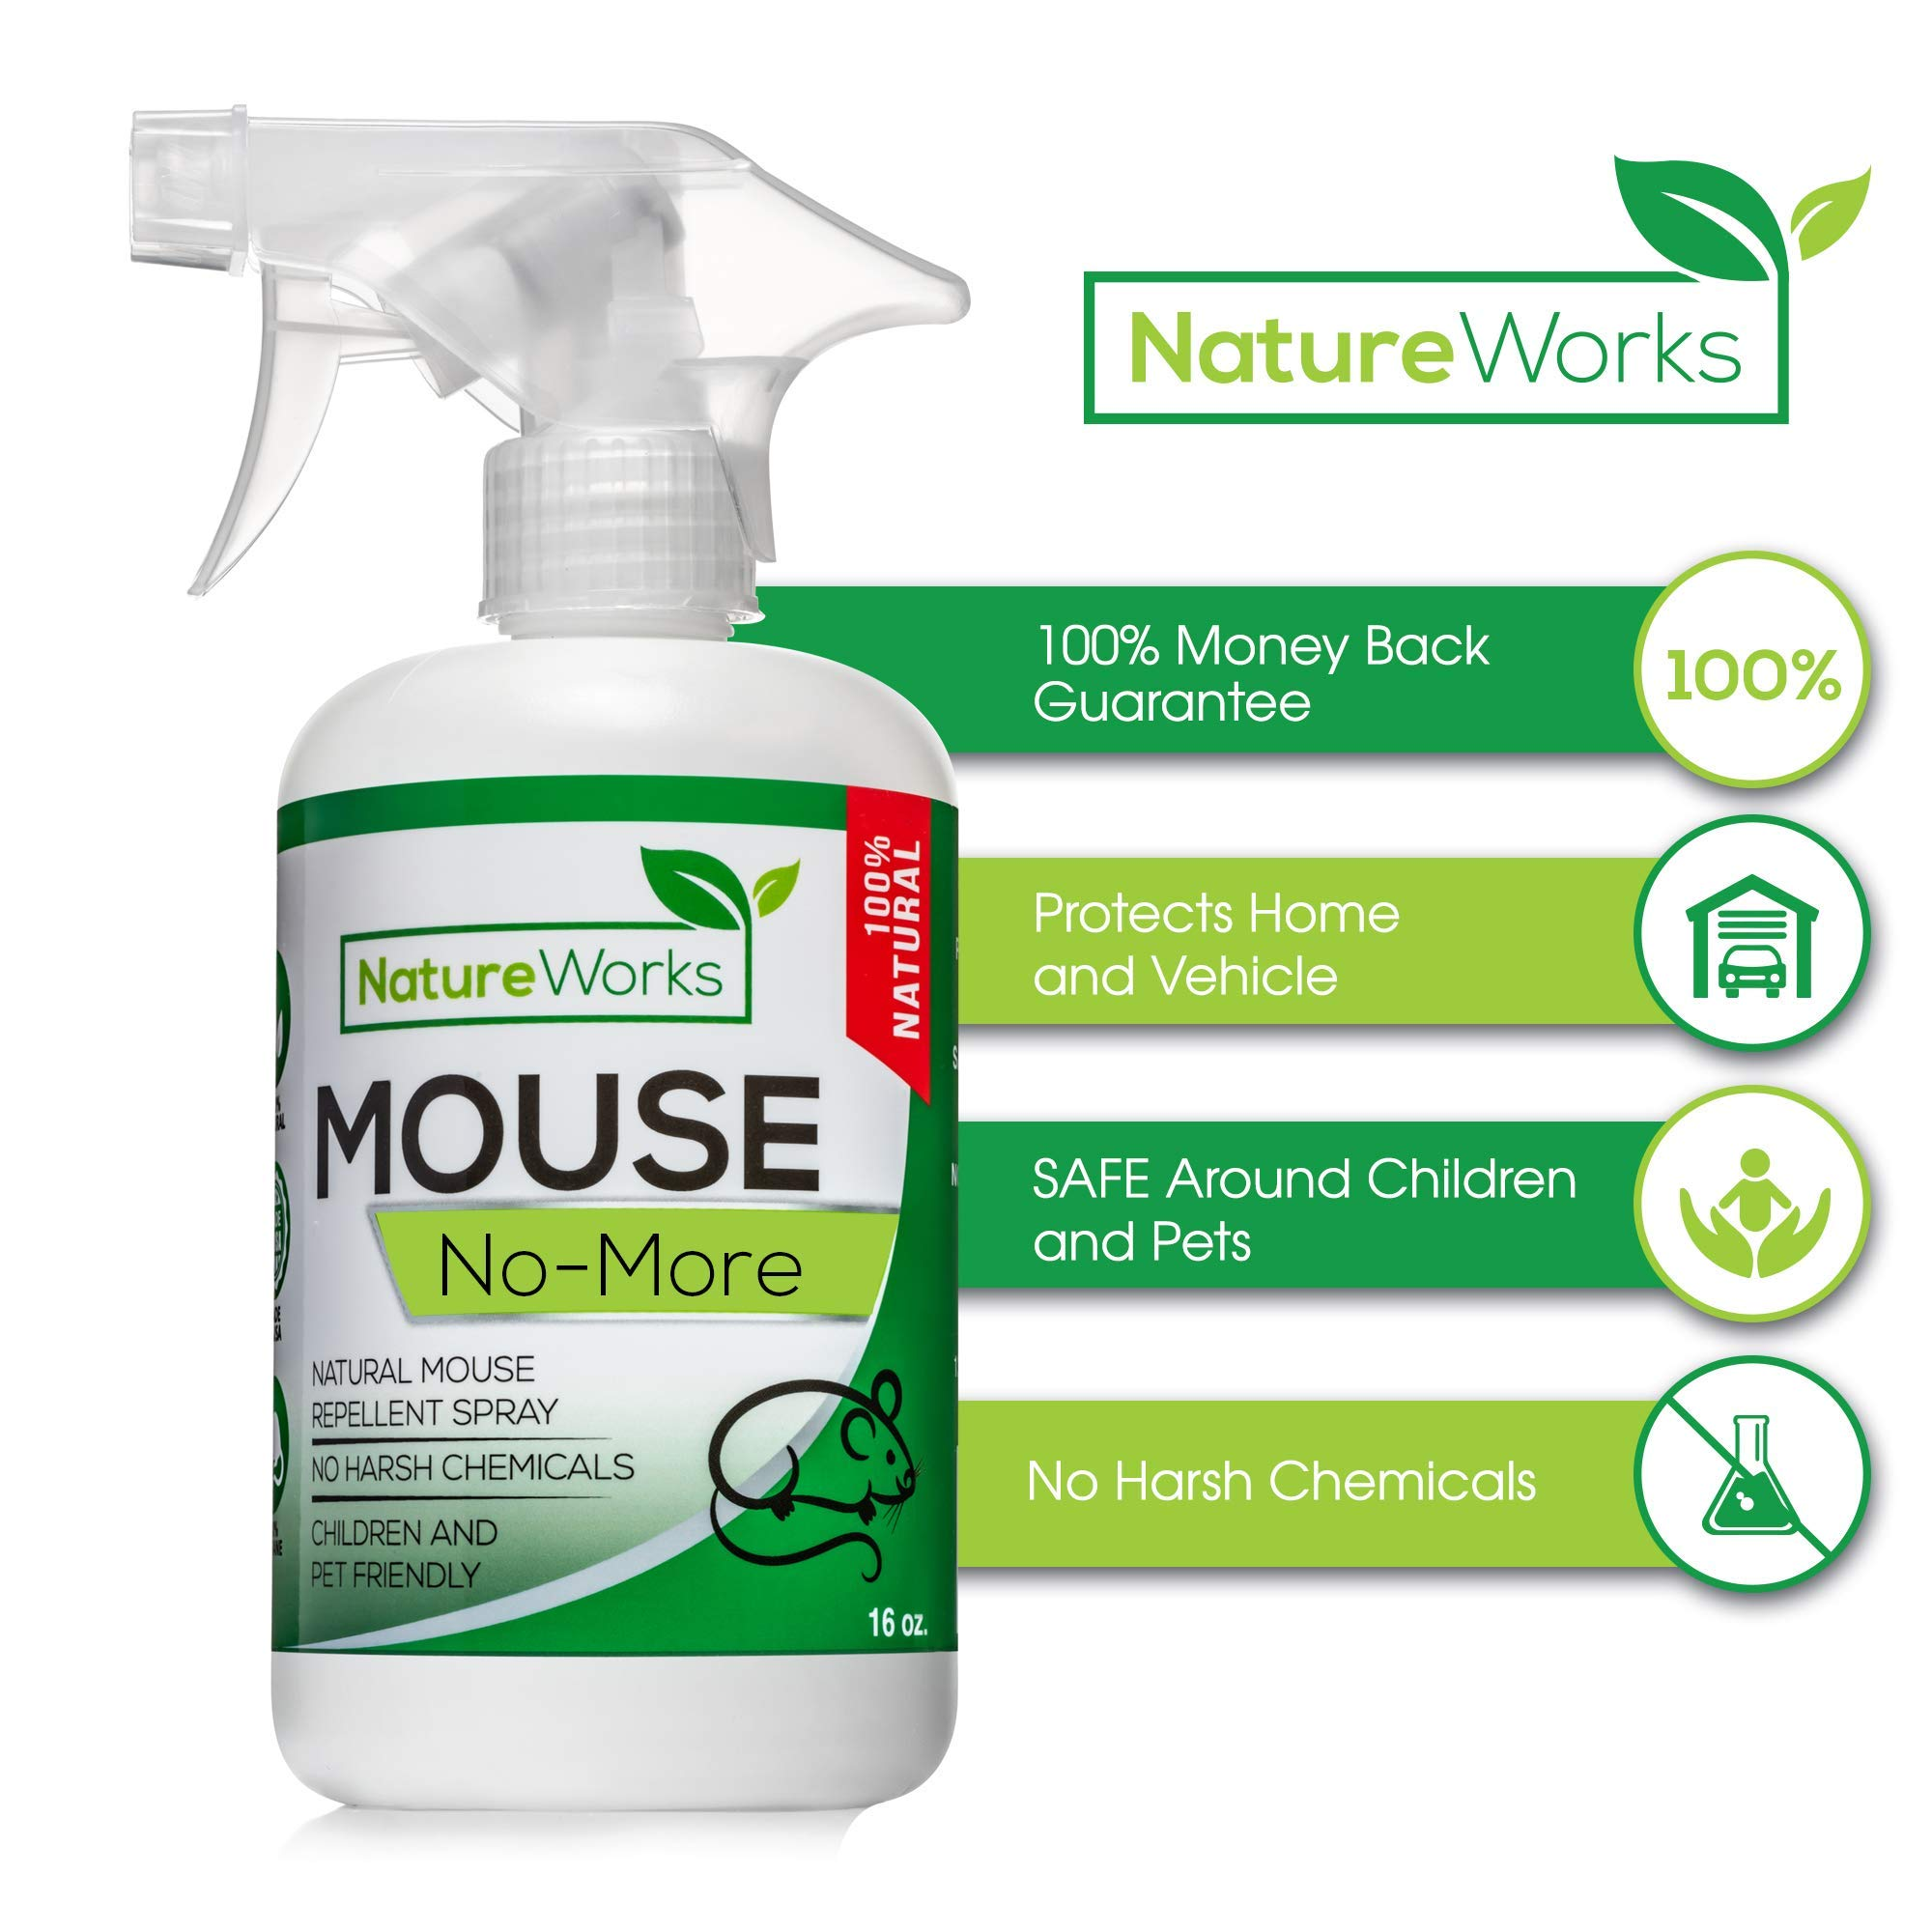 Mouse No-More I Mice Repellent Spray I Mouse Rat Squirrel & Rodent Defense I Vehicle Protection Car RV & Boat I Indoor & Outdoor I Peppermint Oil | Trap & Poison Alternative | Natural Non-Toxic | 16oz by NatureWorks